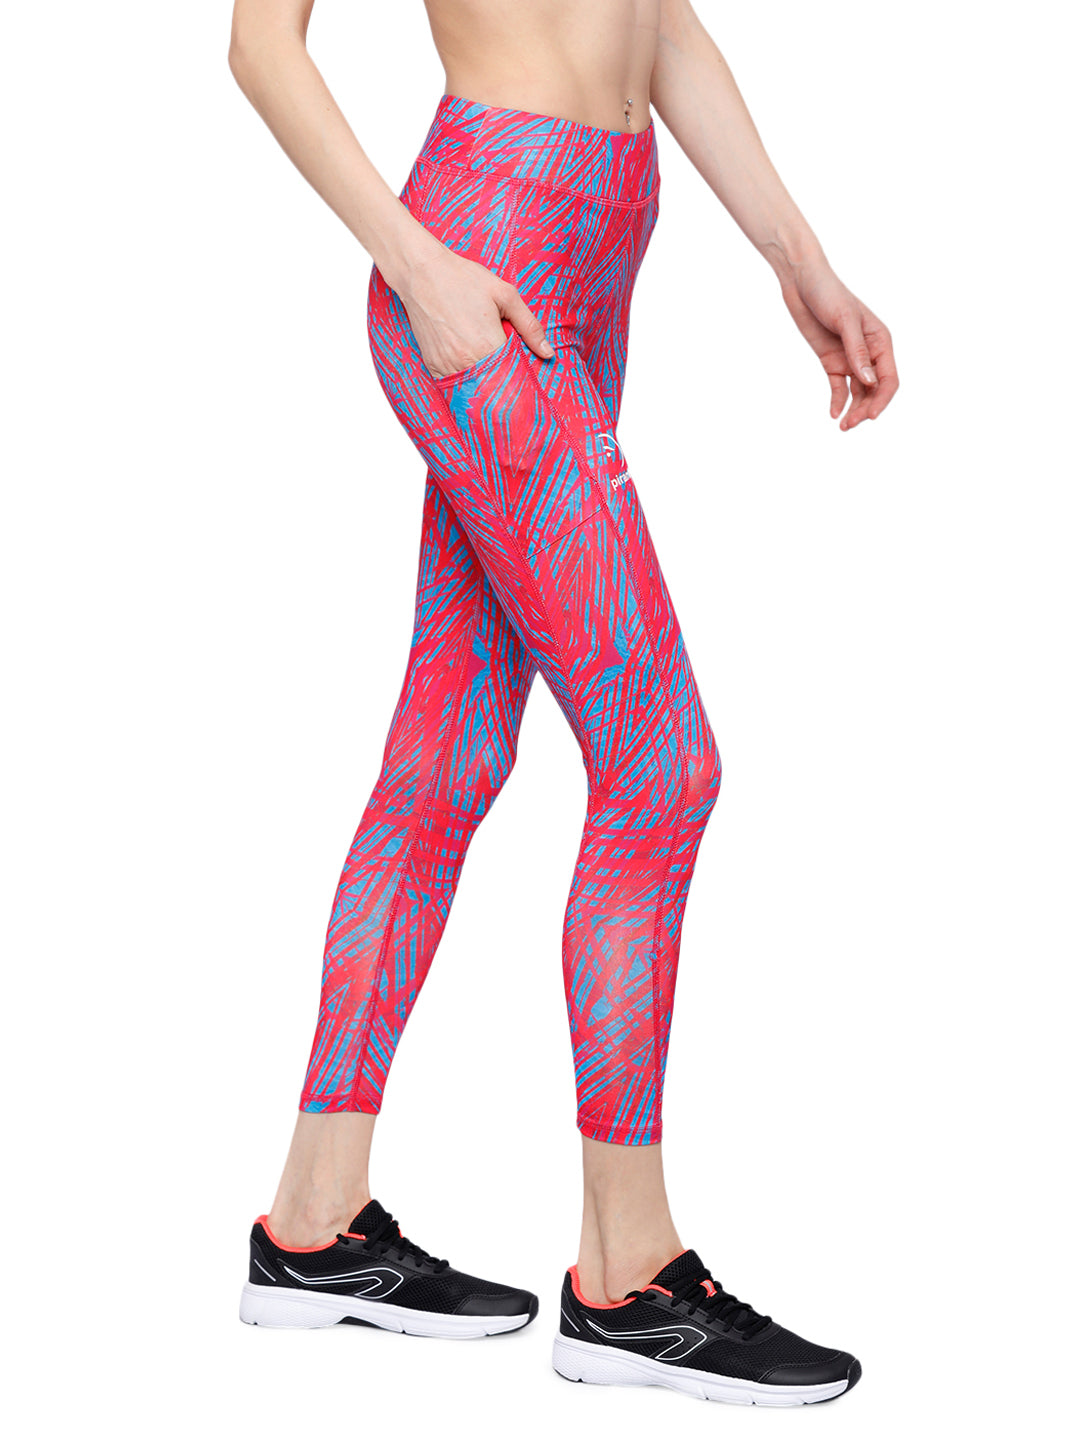 Piranha Women's Printed Yoga And Running Pants - YP163